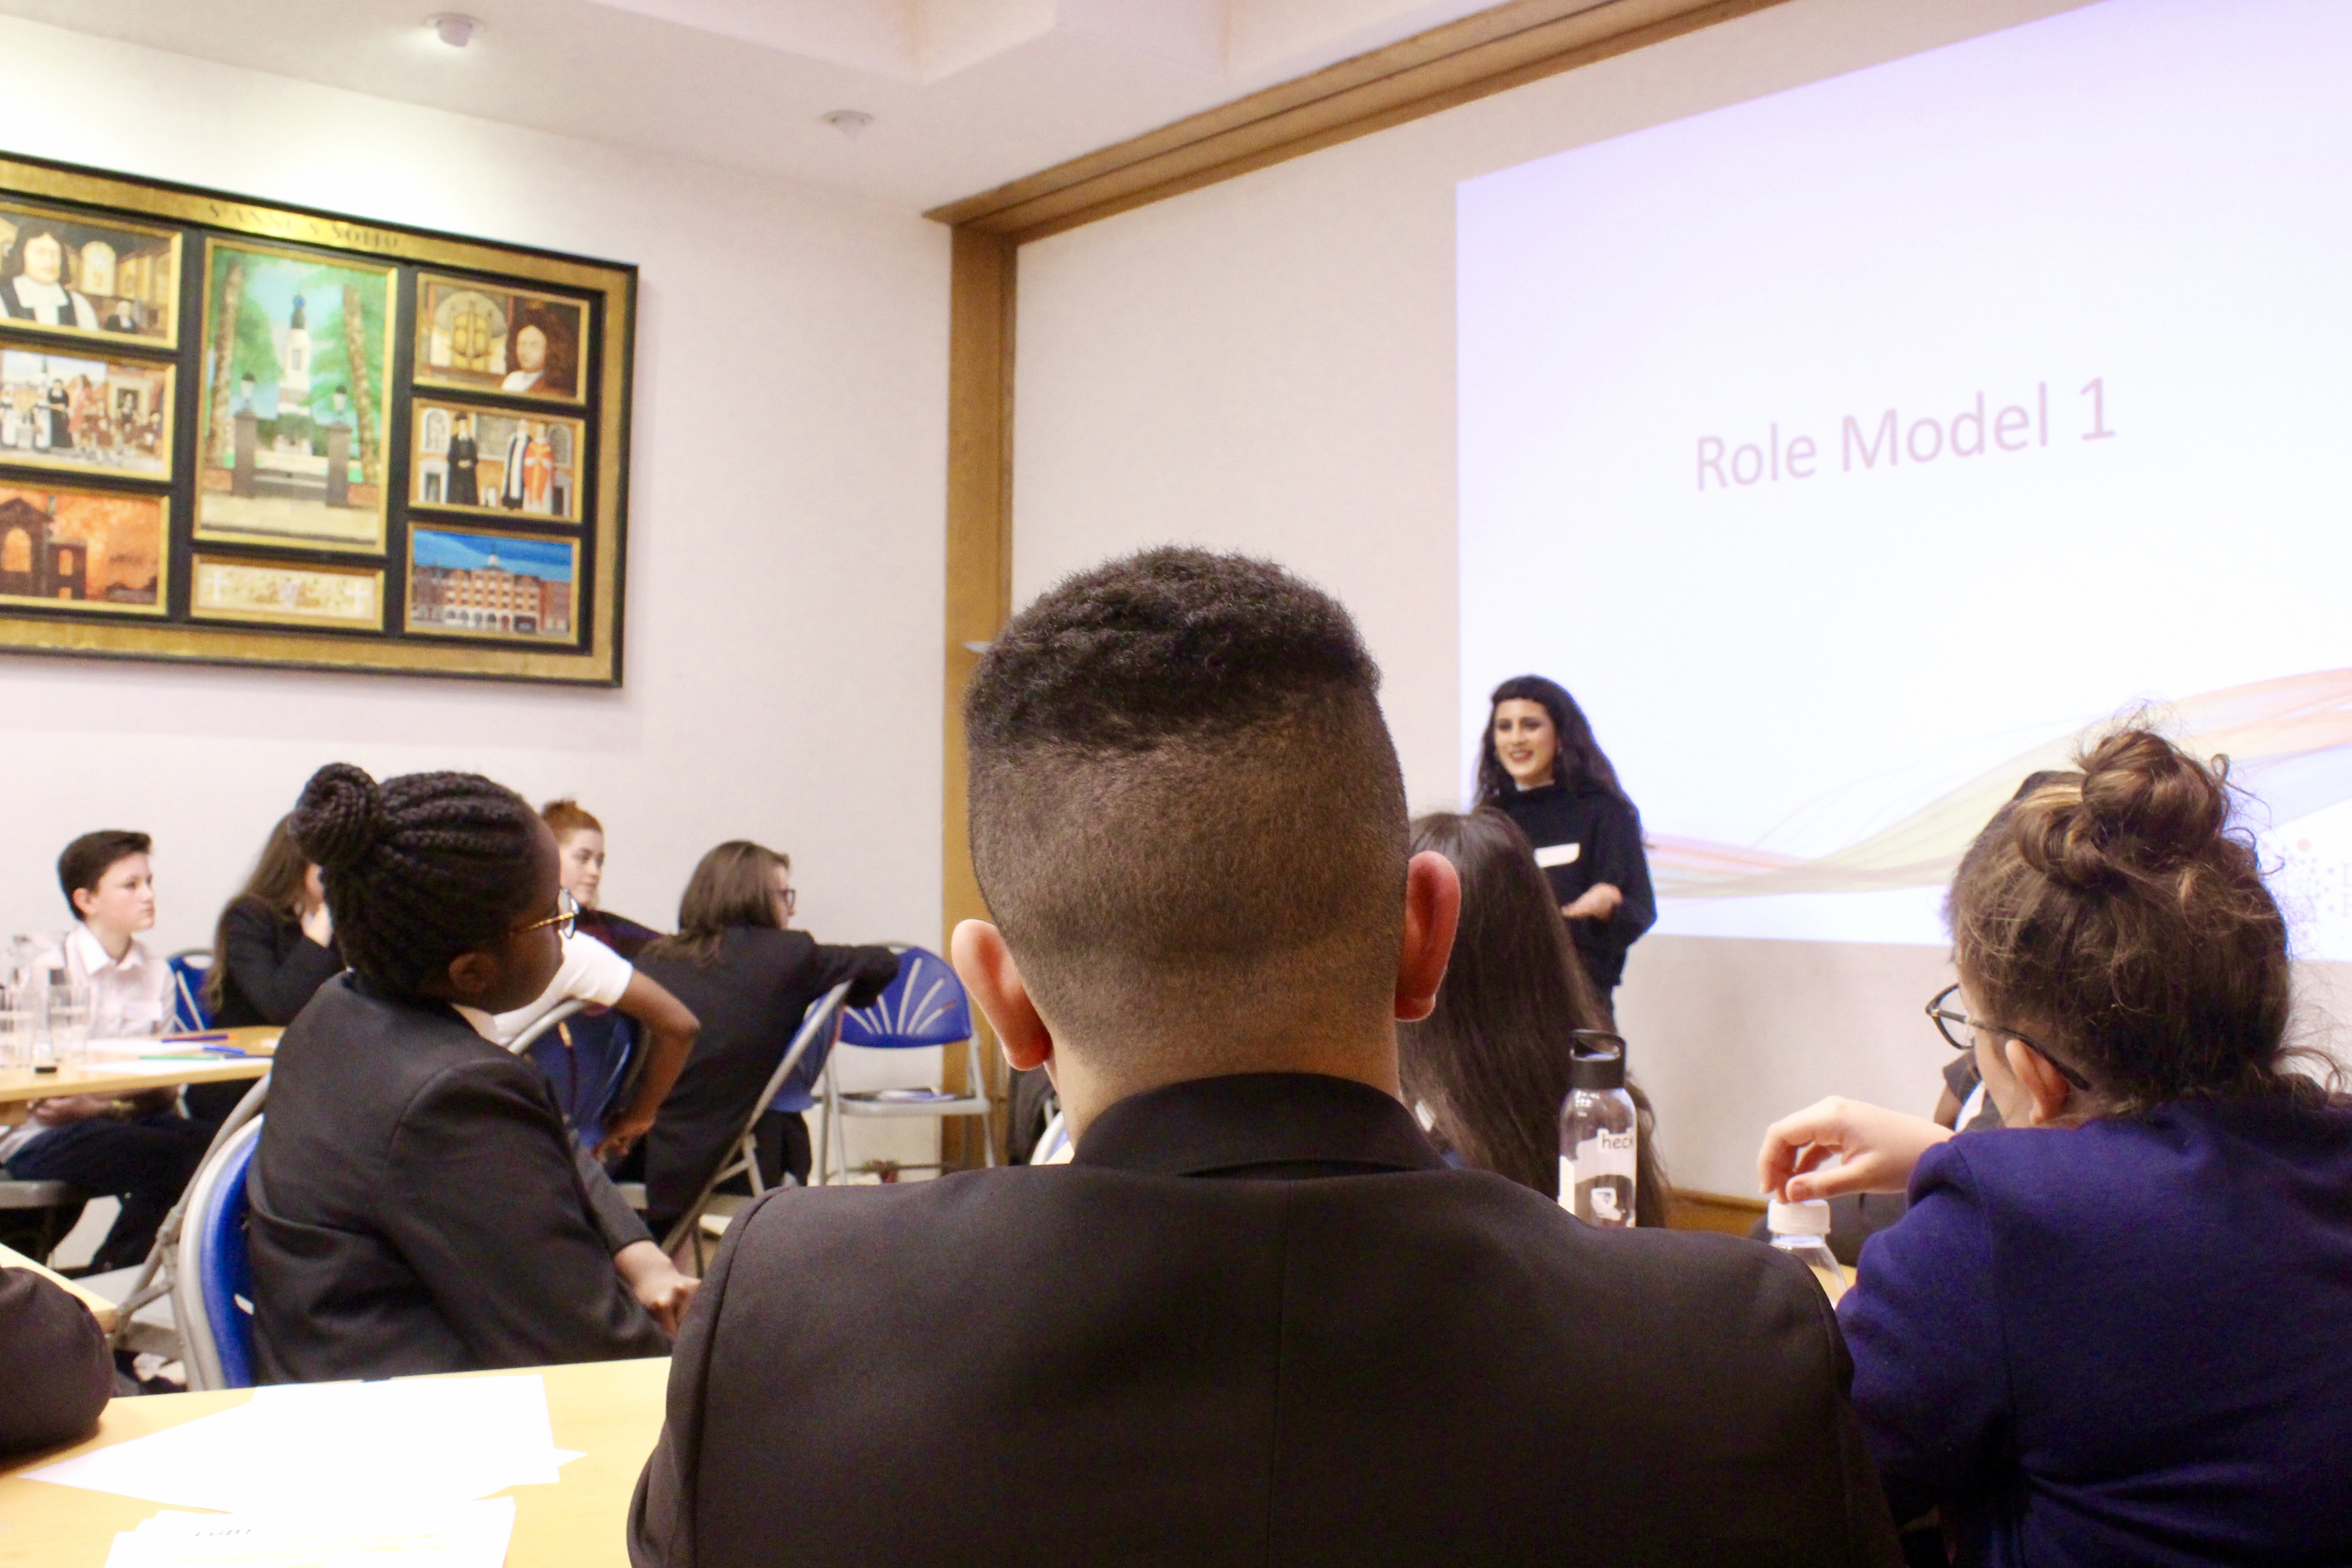 Role model workshop